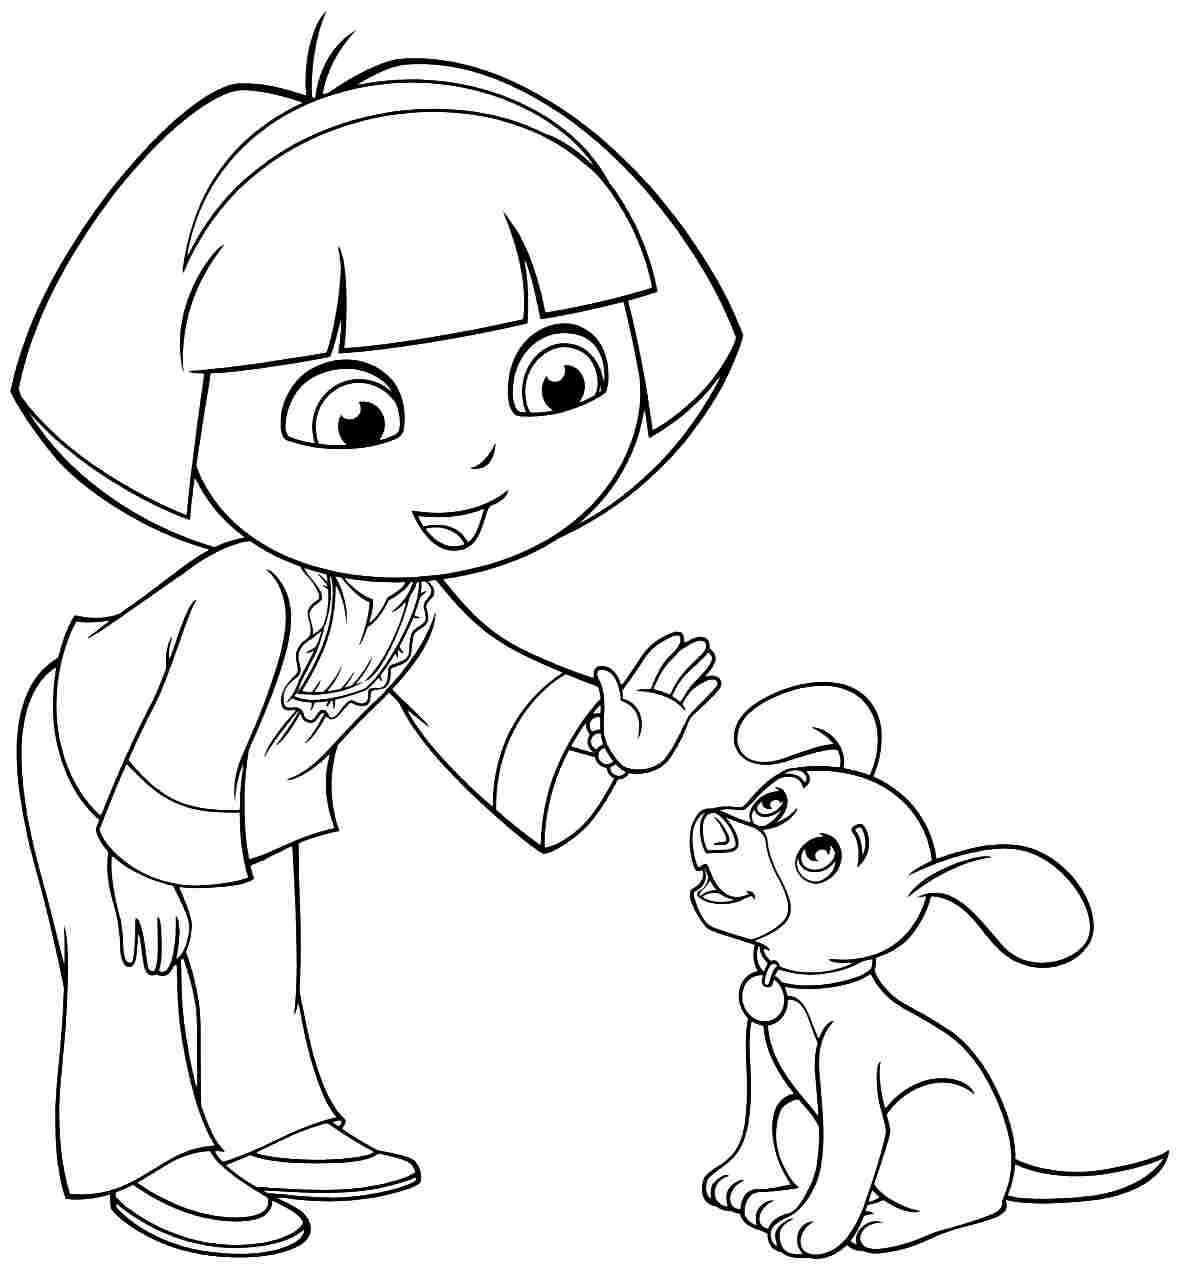 Dora and puppy coloring page for girls | Preschool coloring ...